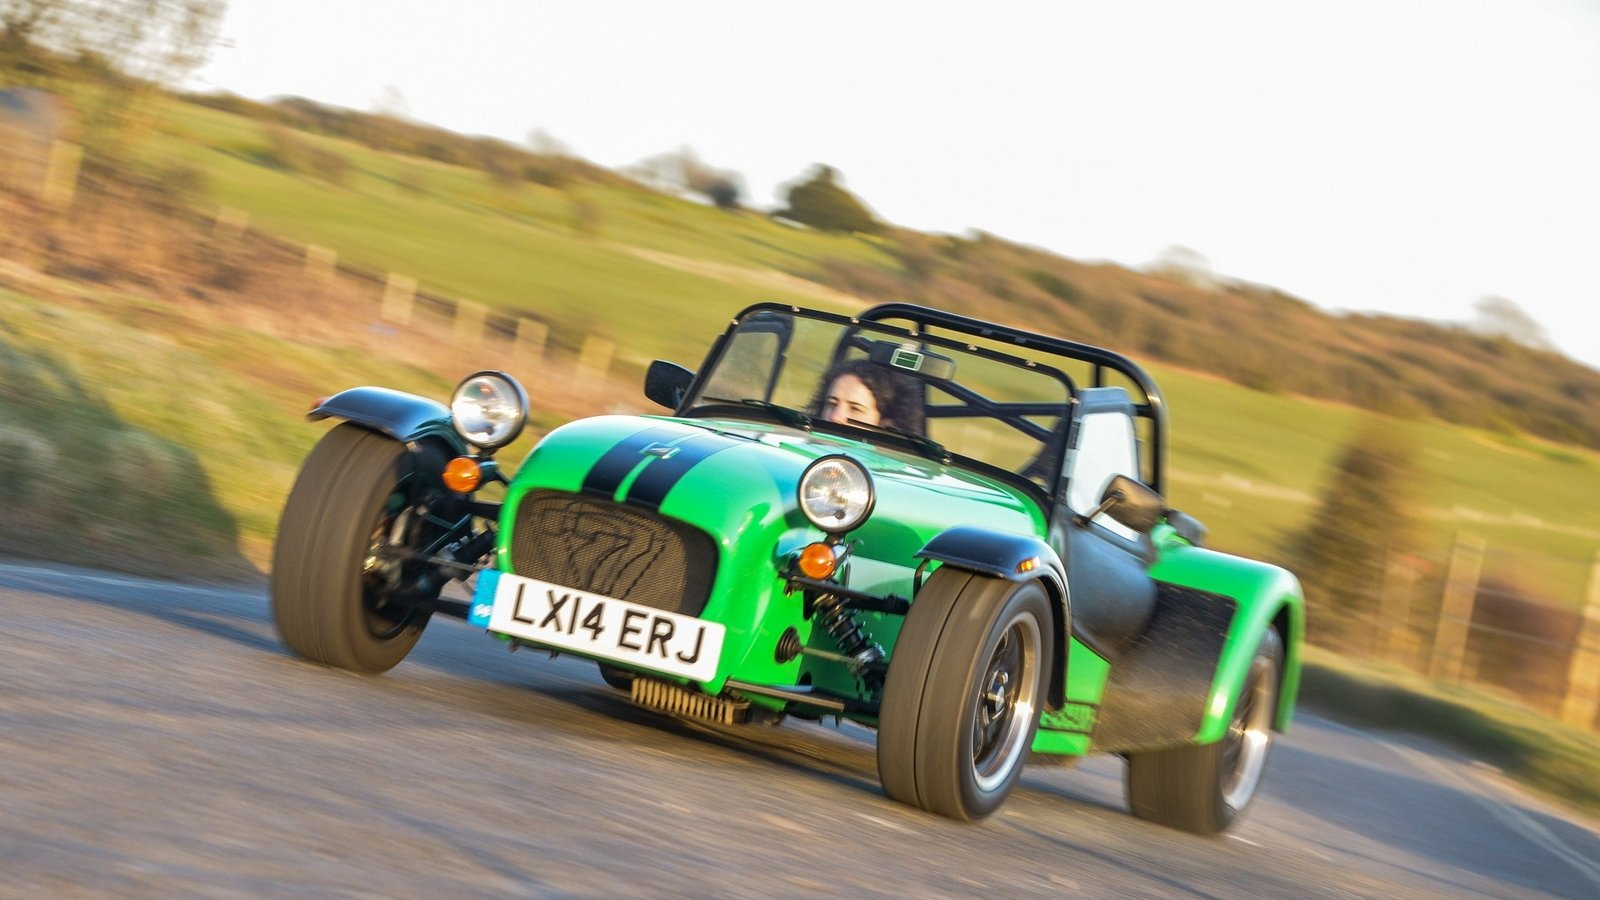 Image Result For Open Road Hire Caterham Sports Car Hire Caterham